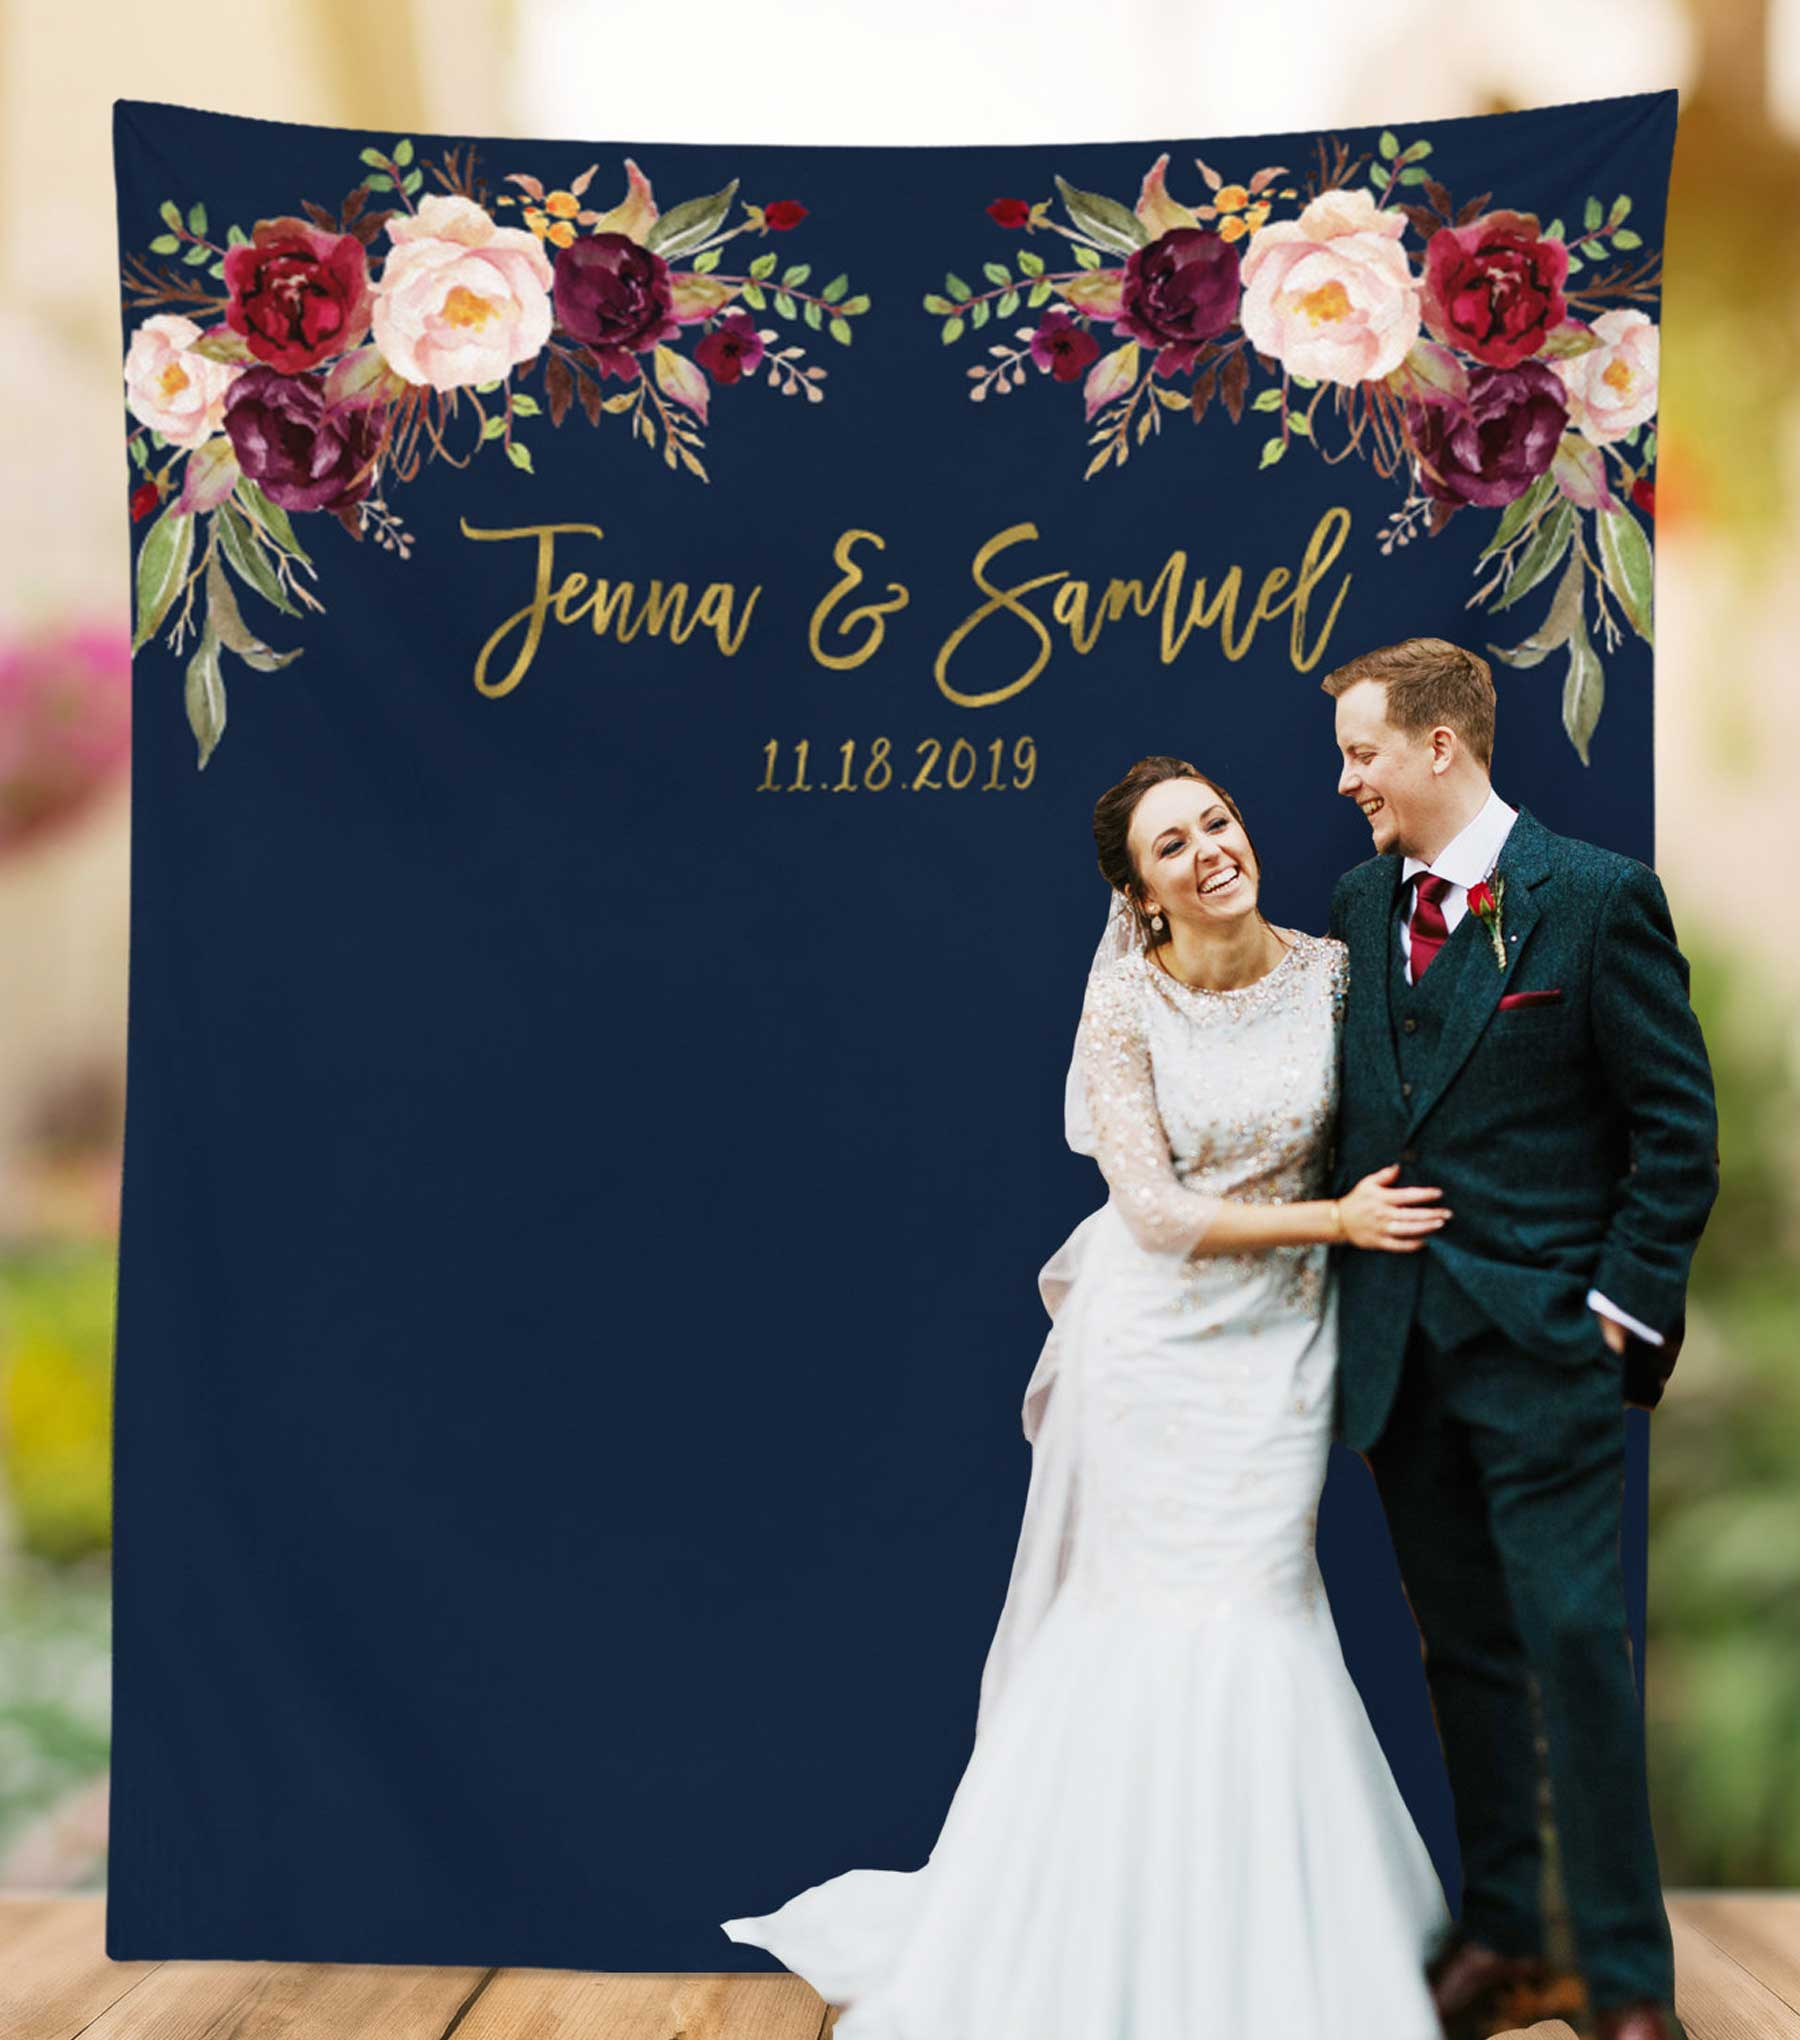 Navy and Gold Wedding Backdrop Design for Sale   Blushing Drops